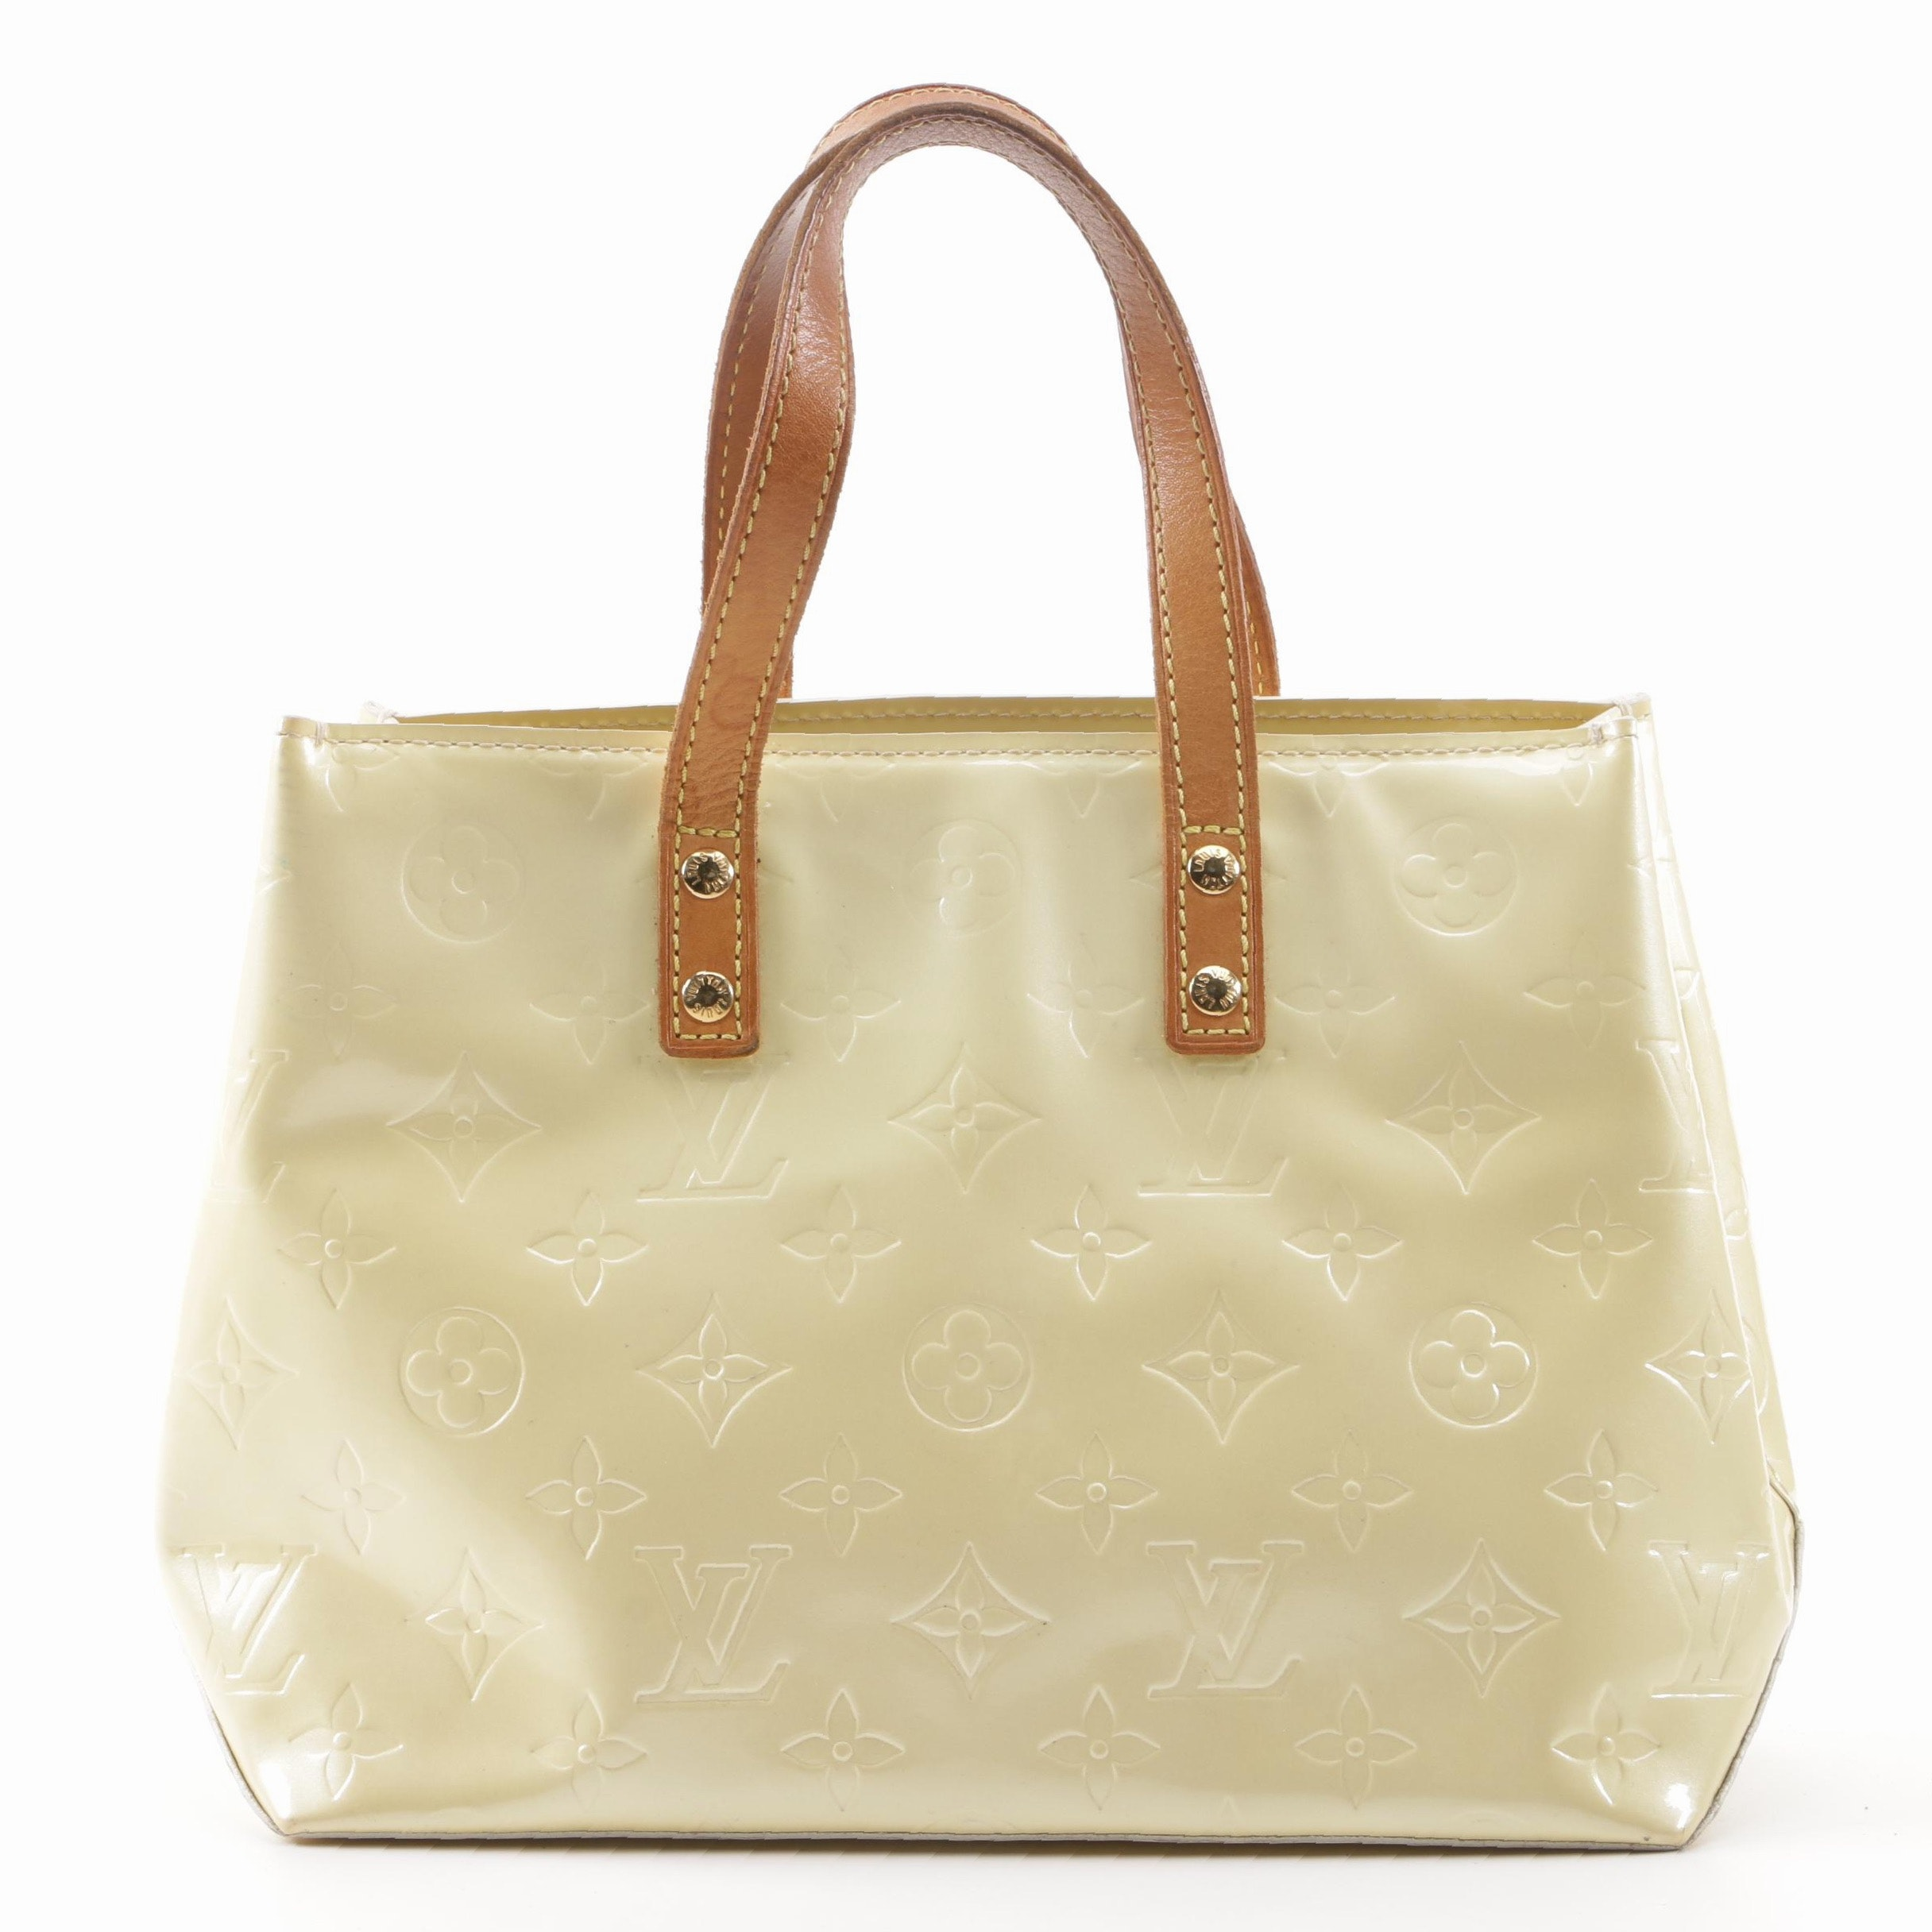 2005 Louis Vuitton Paris Citrine Monogram Vernis Reade PM Bag